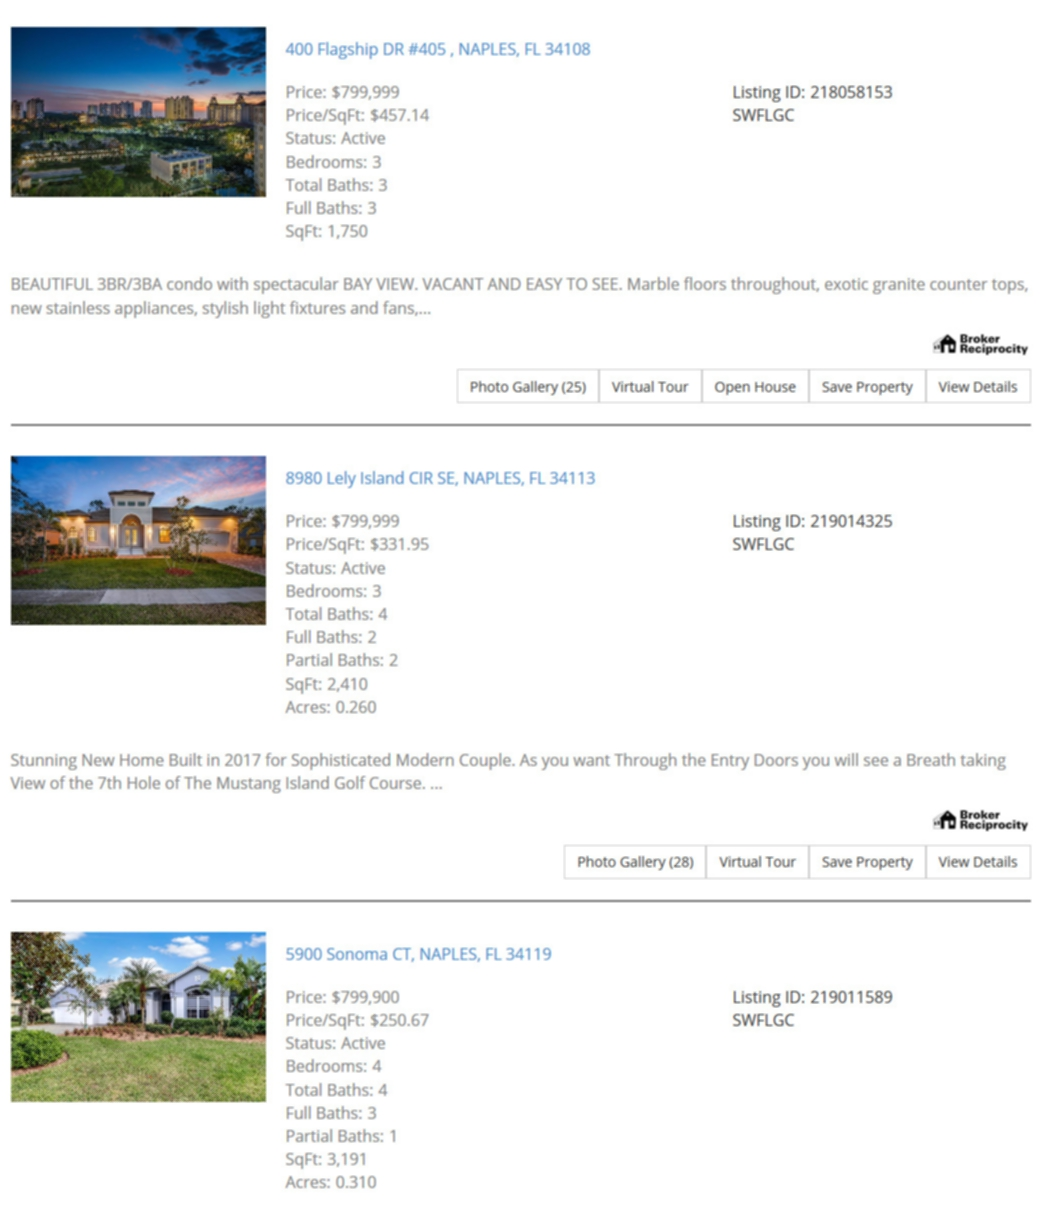 Mobile Friendly listings